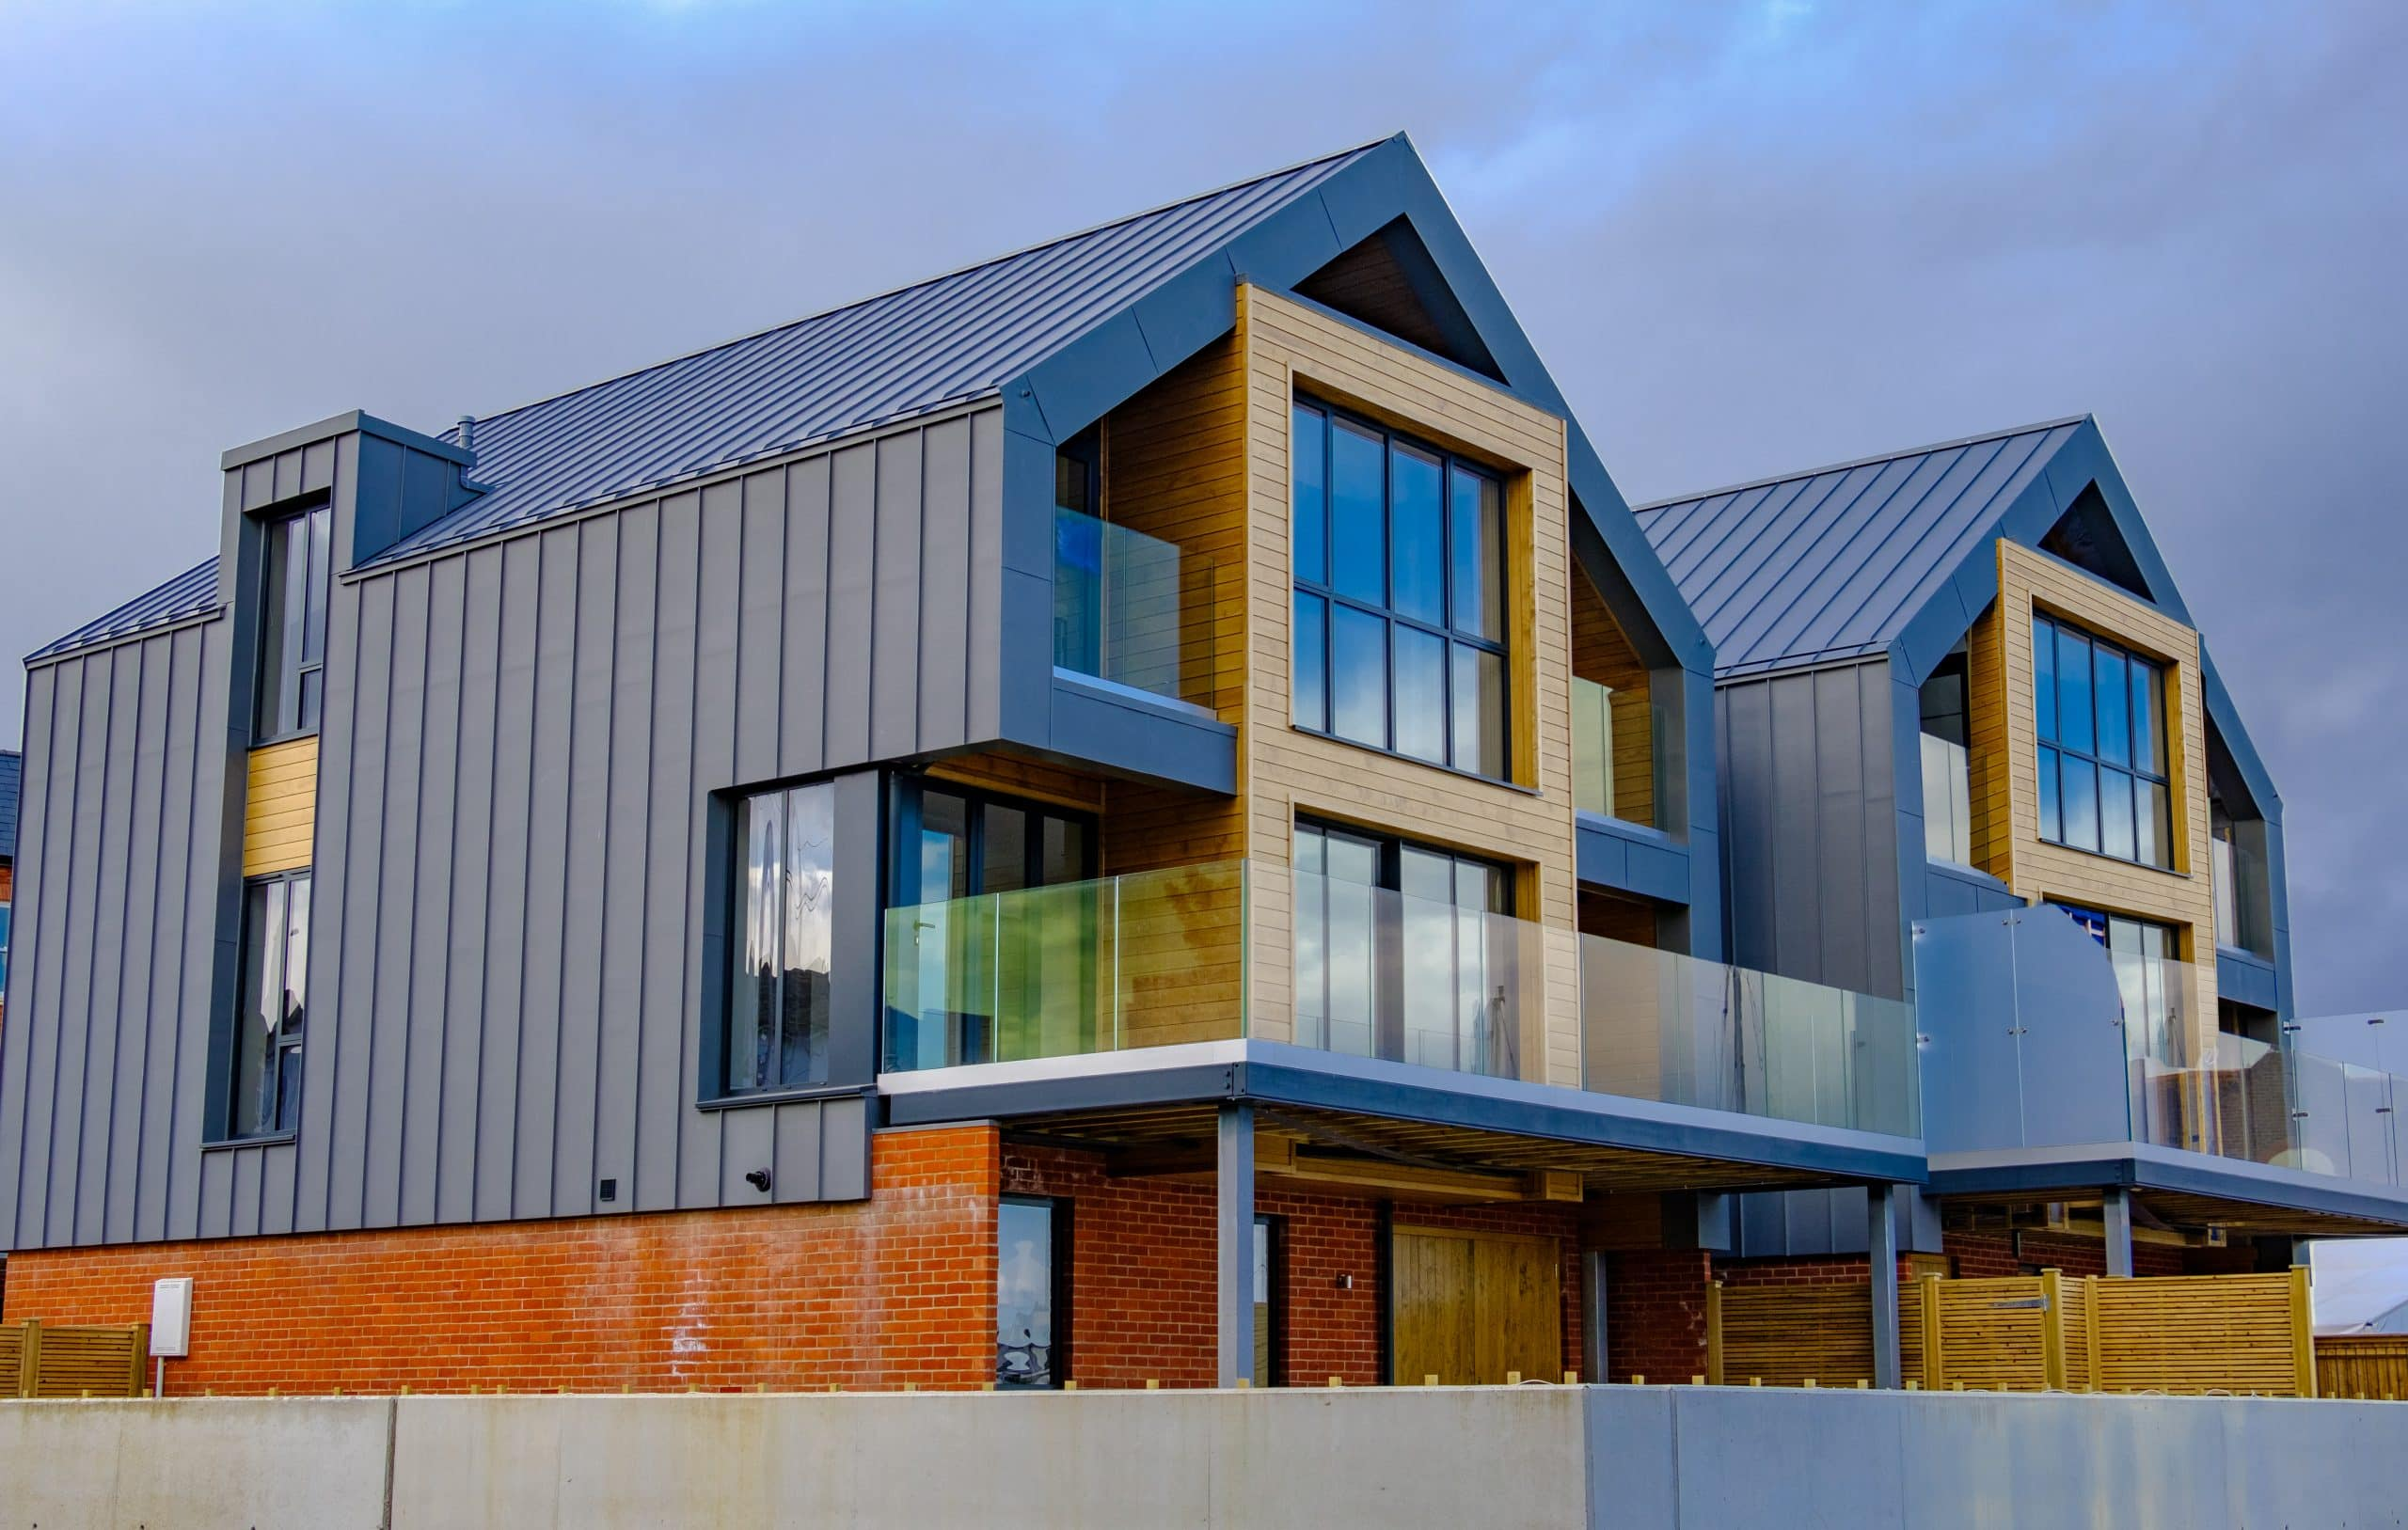 conservation area residential development by the coast using aluminium framed windows and doors